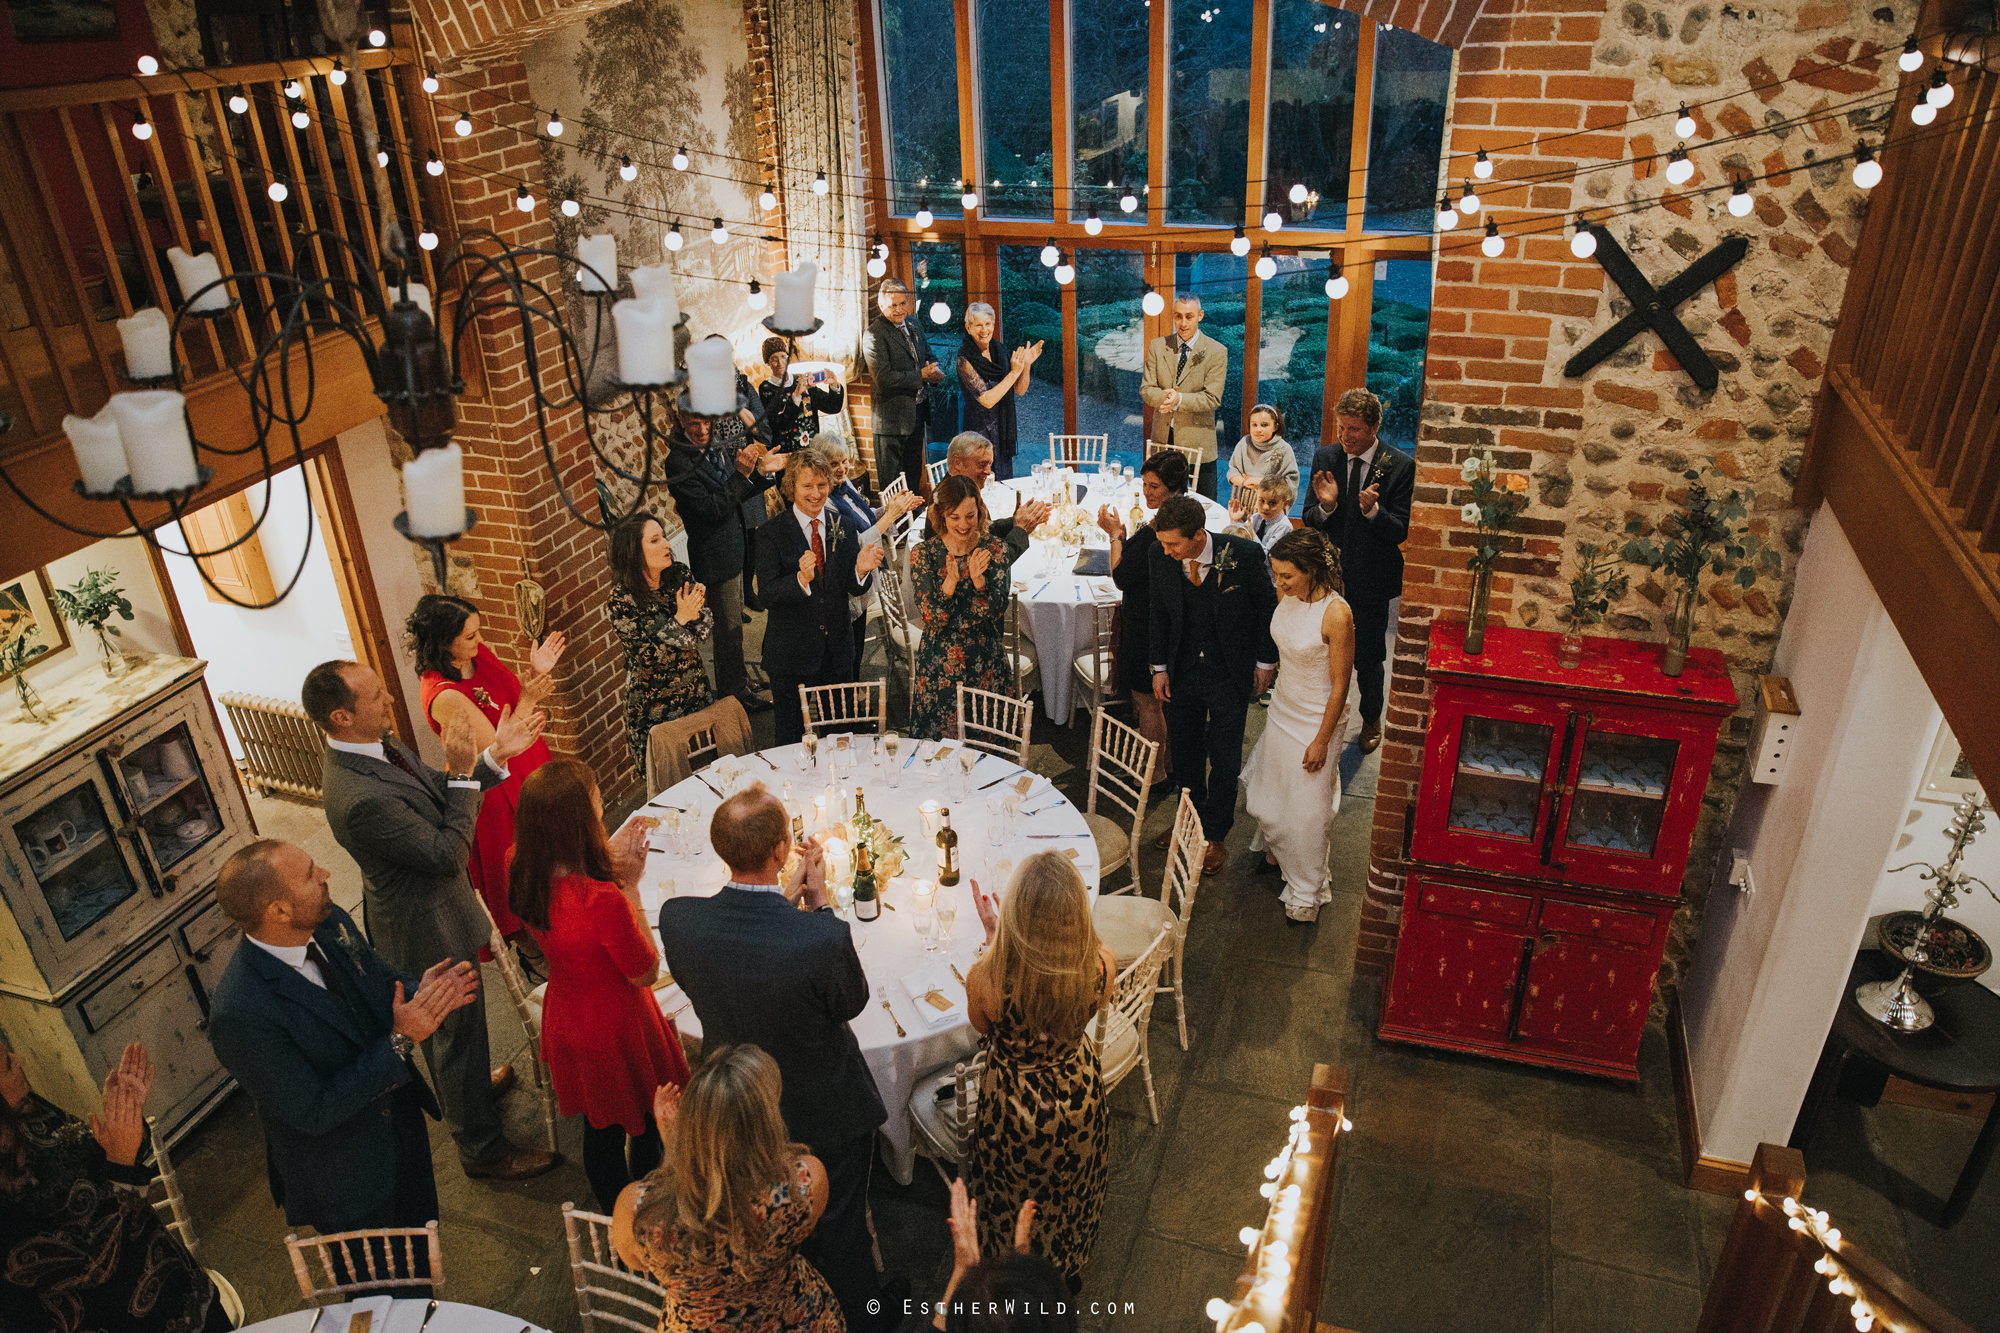 Wedding_Photographer_Chaucer_Barn_Holt_Norfolk_Country_Rustic_Venue_Copyright_Esther_Wild_IMG_1523.jpg